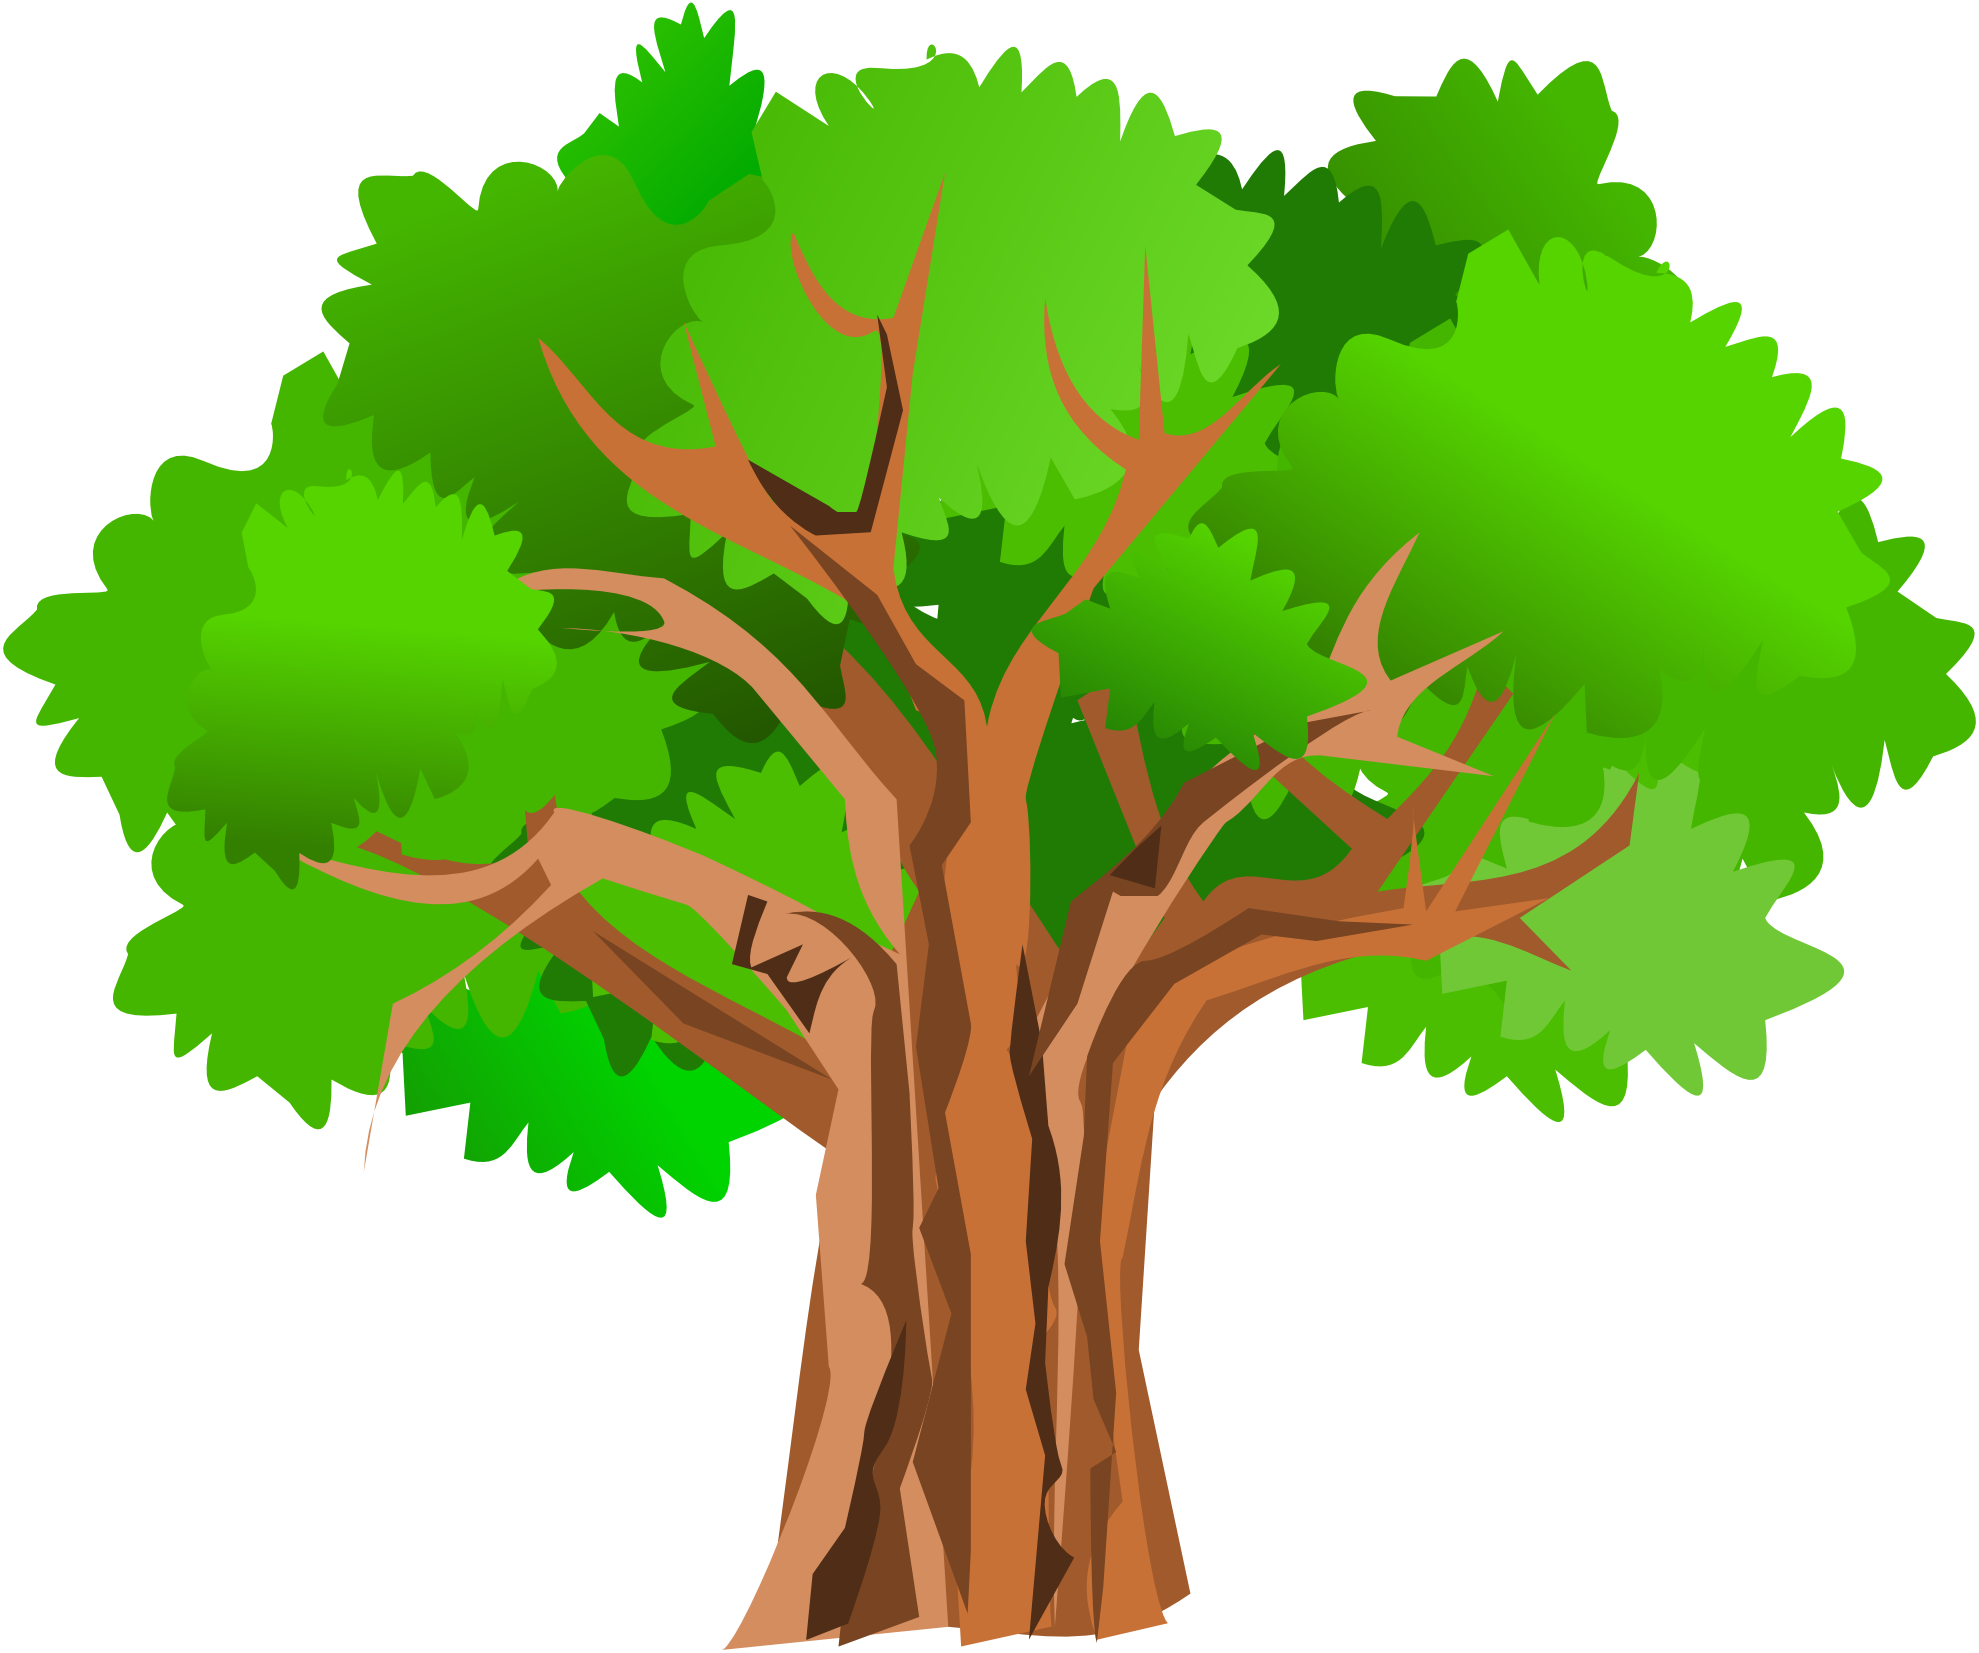 Clipart family tree jpg free stock trees art | Family Tree Clip Art | trees | Pinterest | Tree art ... jpg free stock